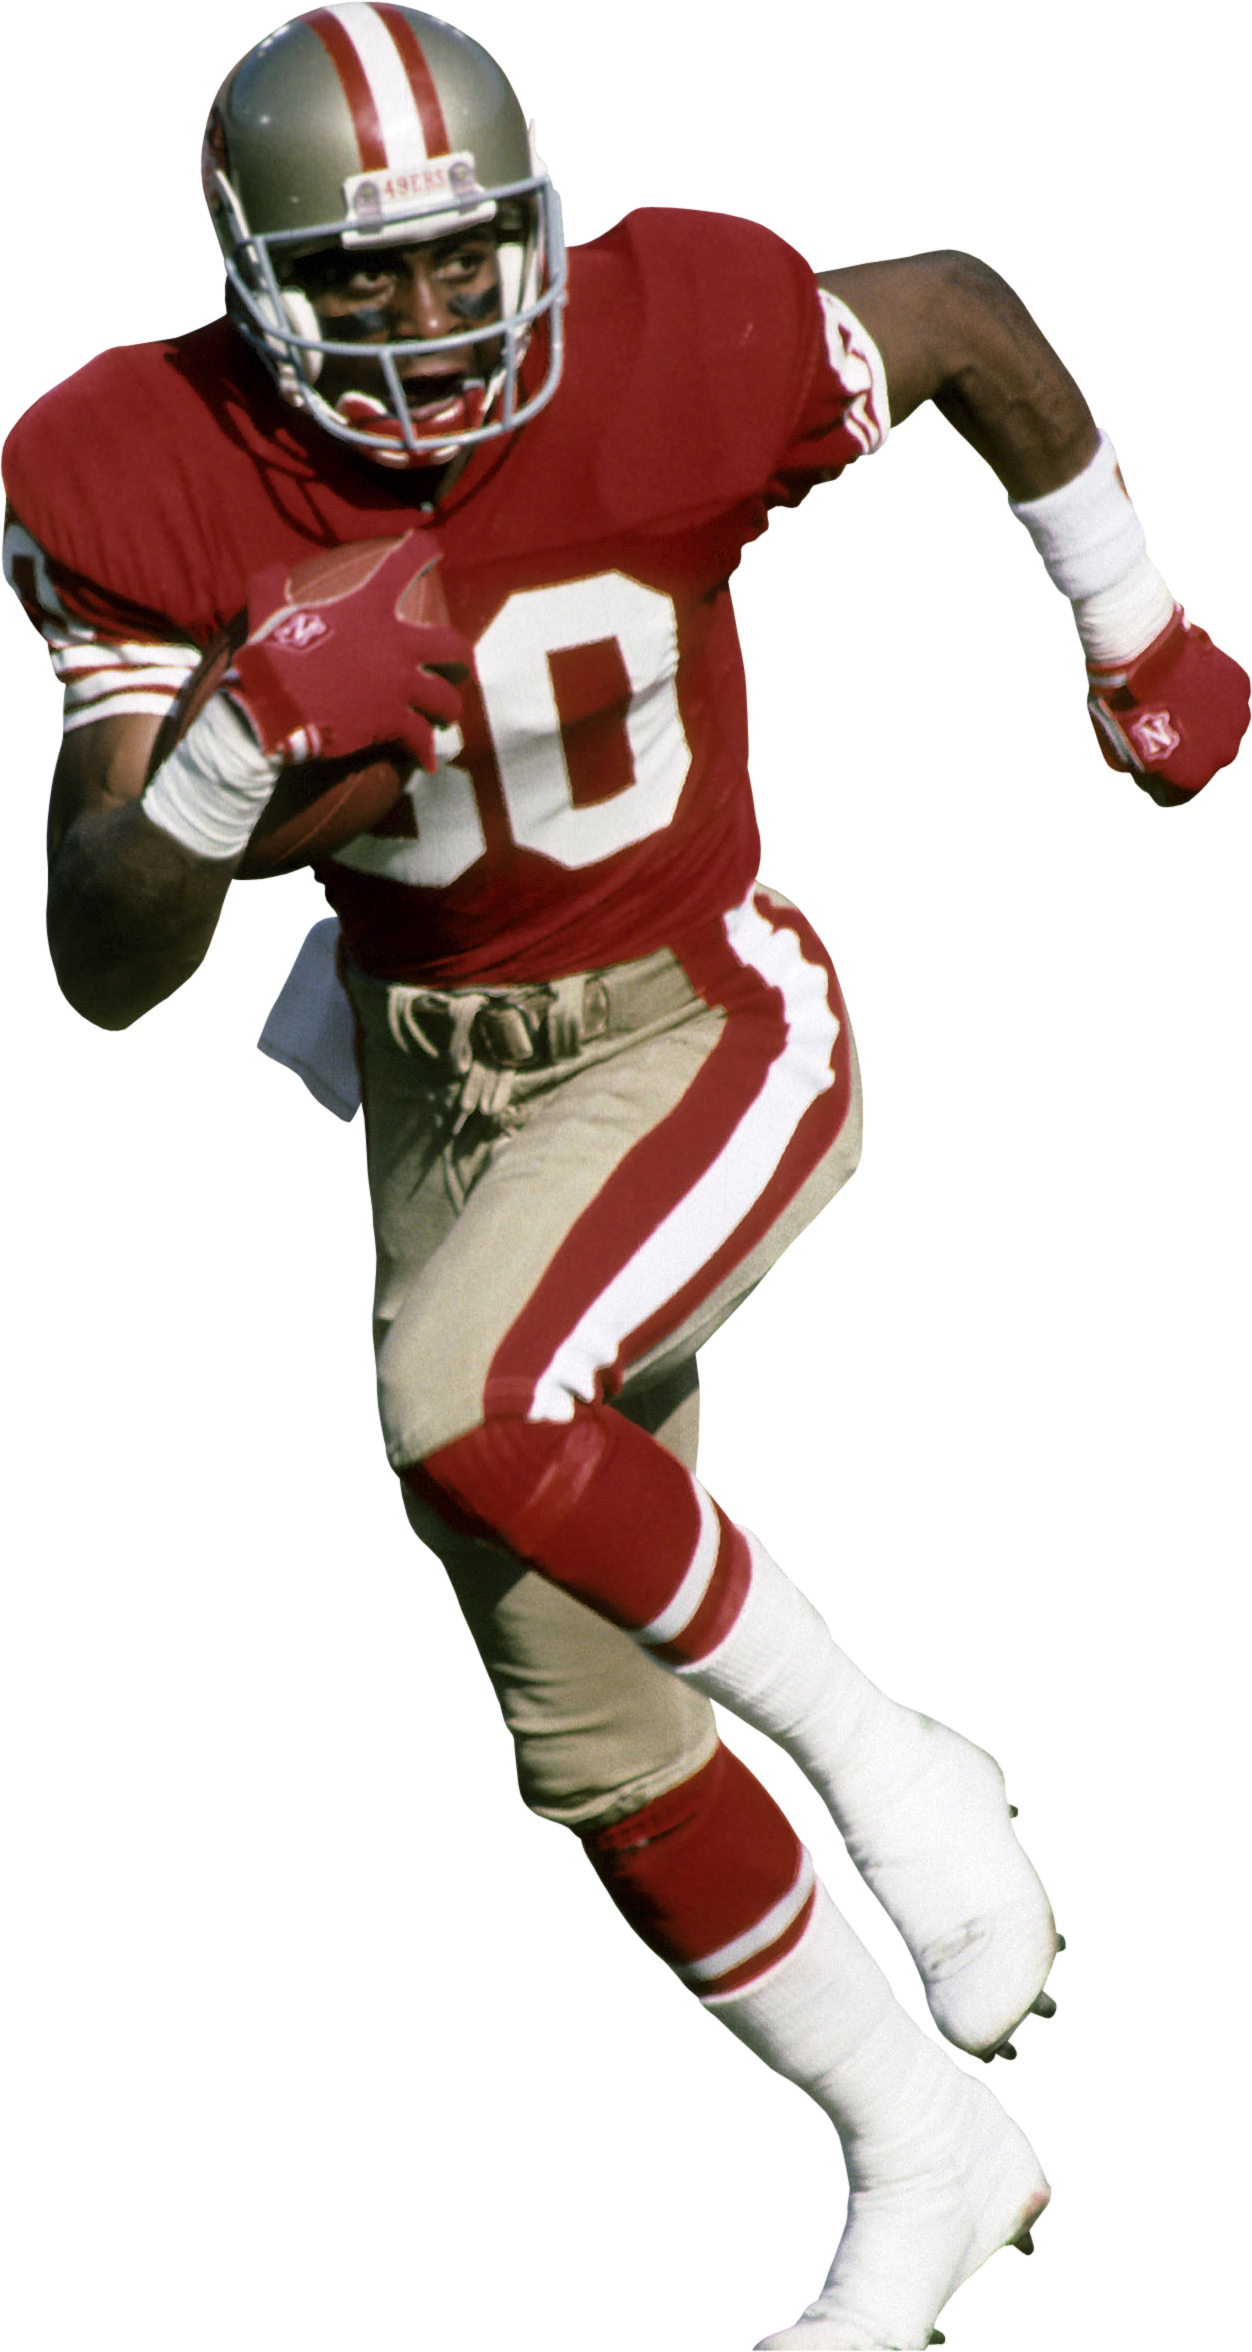 2b03c88a jerry rice | Jerry Rice Cuts Photo album by SportsCovers | Jerry ...